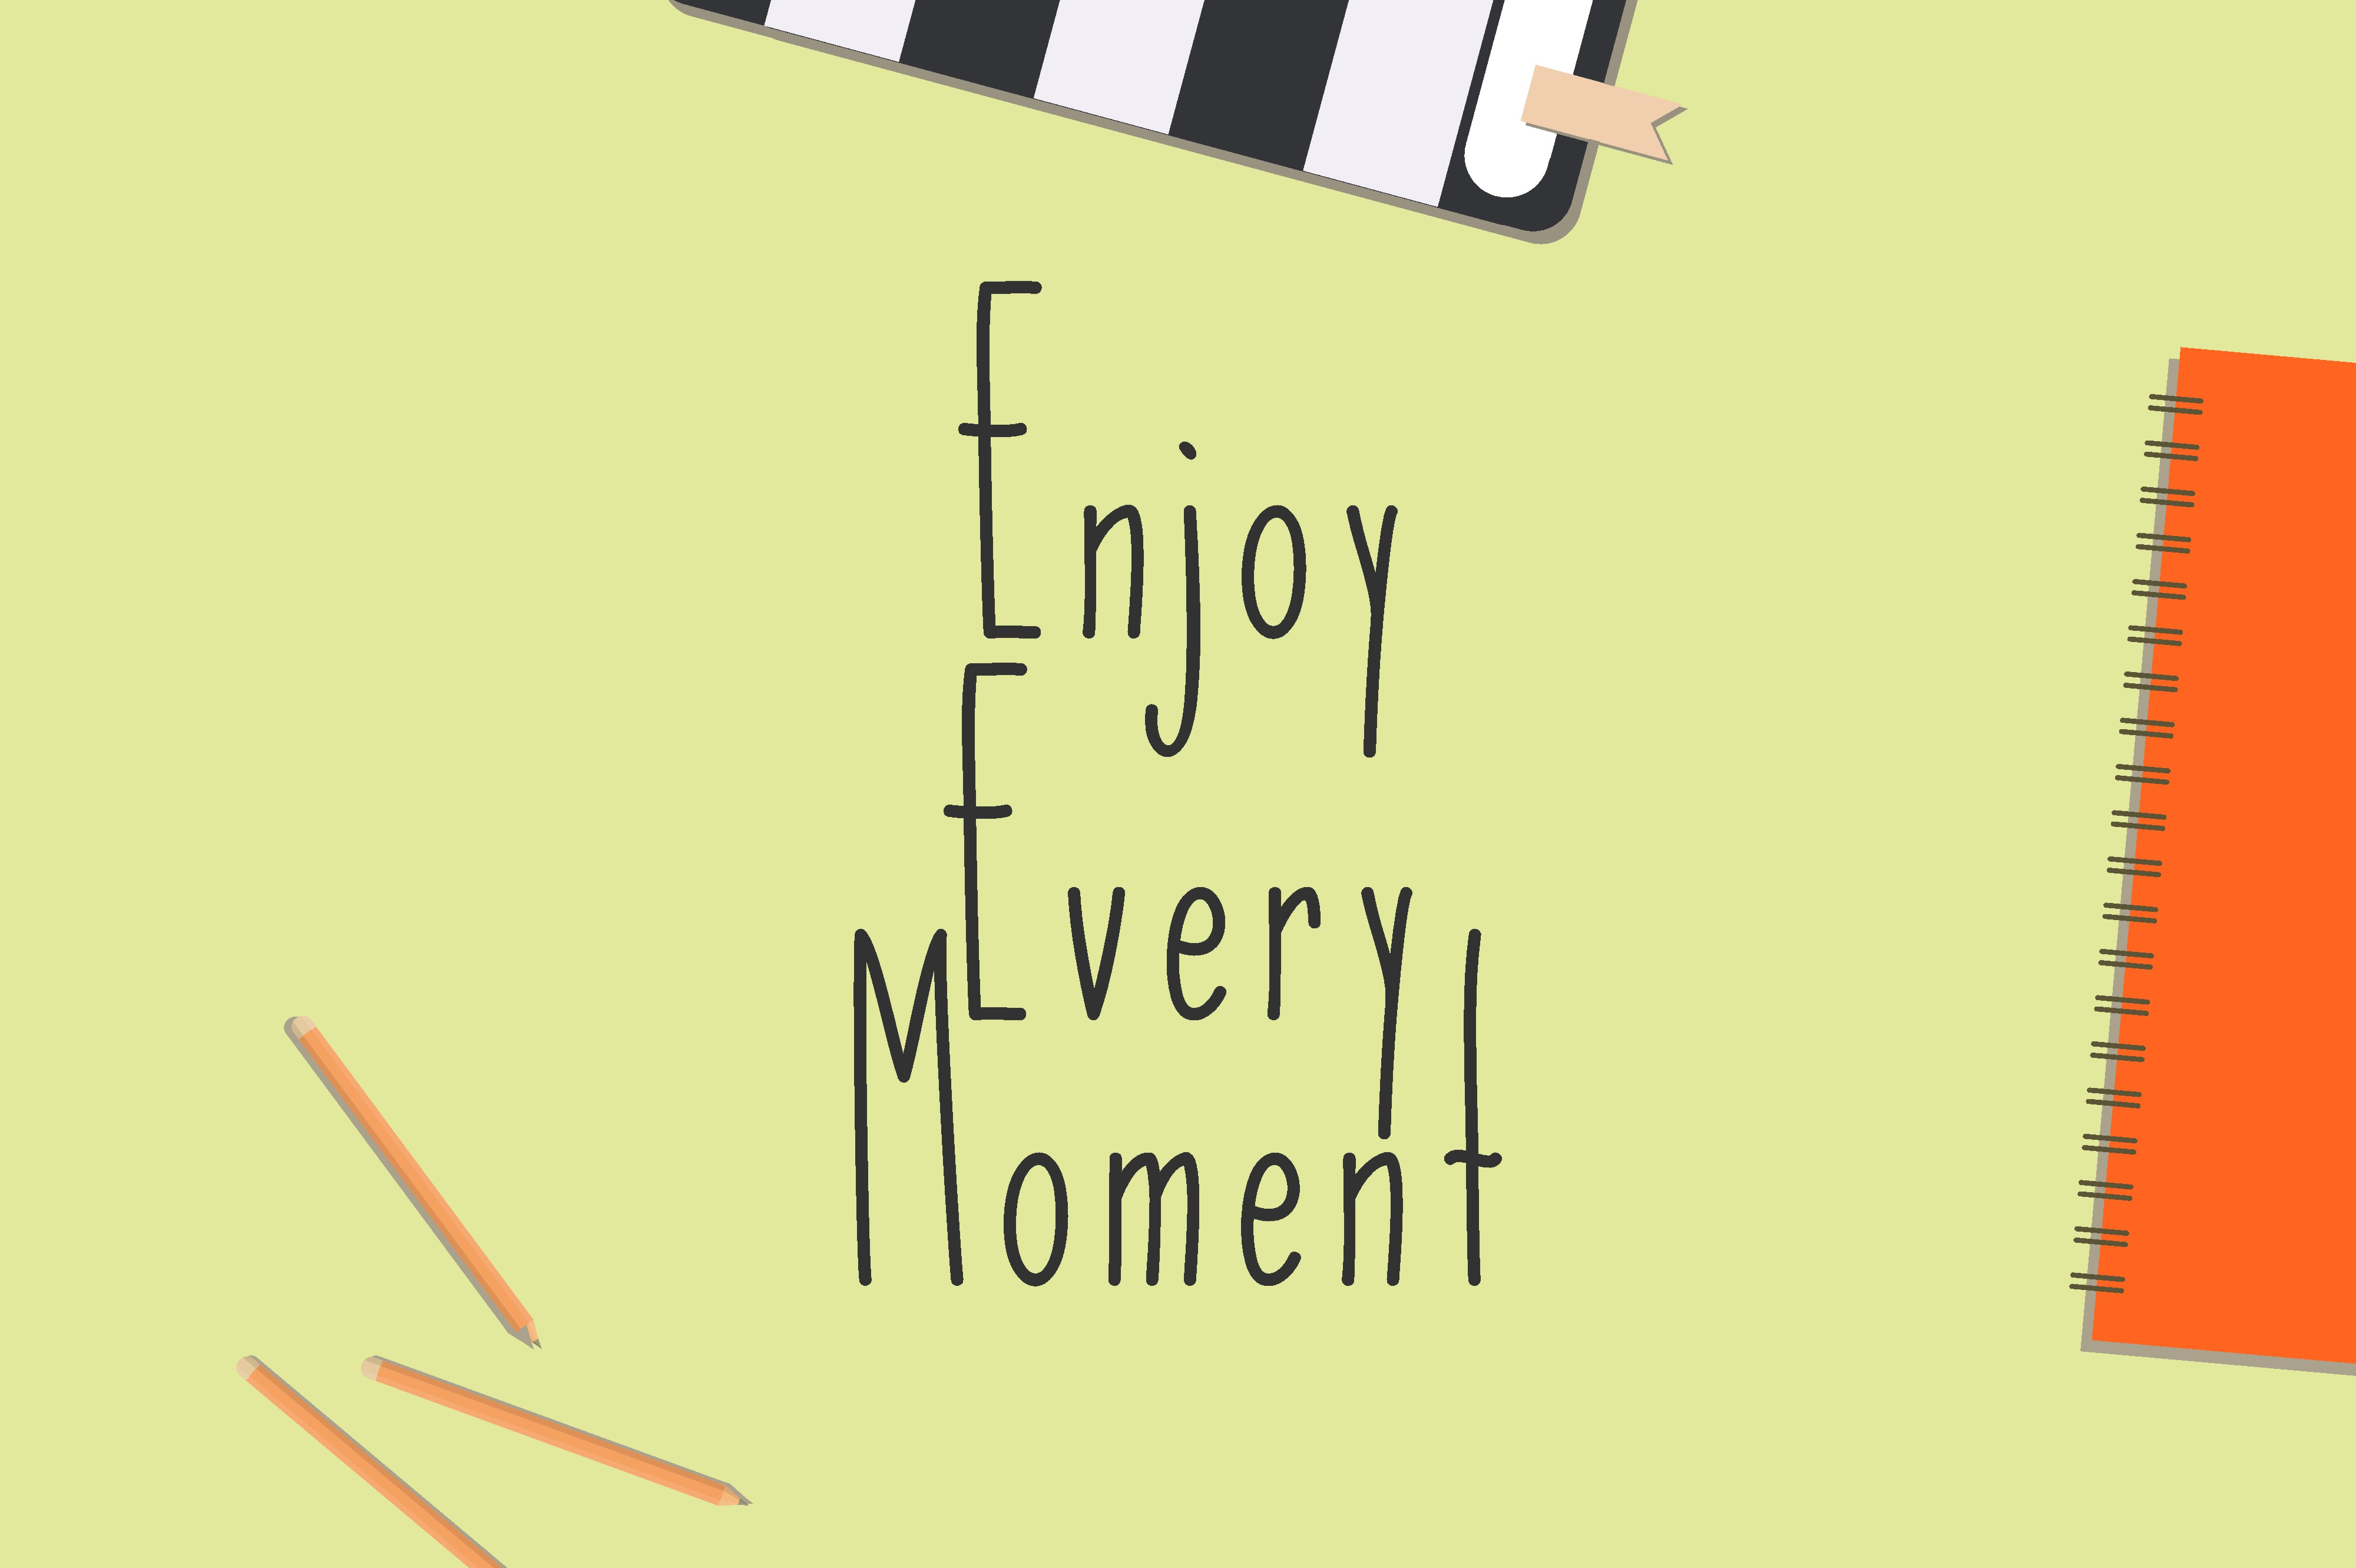 Download Free Enjoy Every Moment Graphic By Chairul Ma Arif Creative Fabrica for Cricut Explore, Silhouette and other cutting machines.